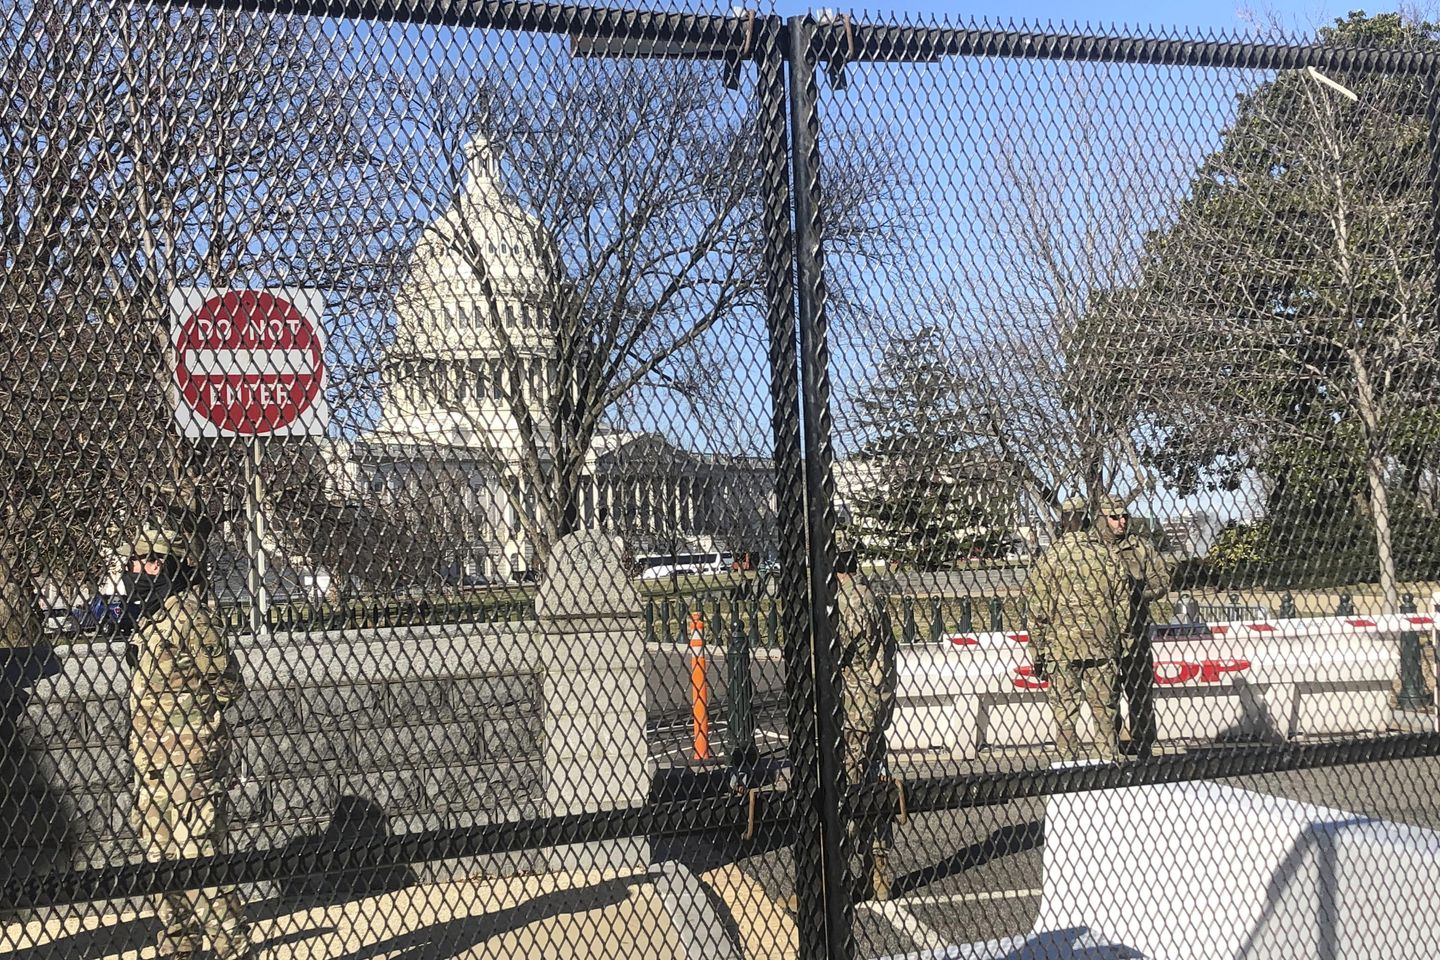 Armed soldiers patrol D.C. amid heightened security